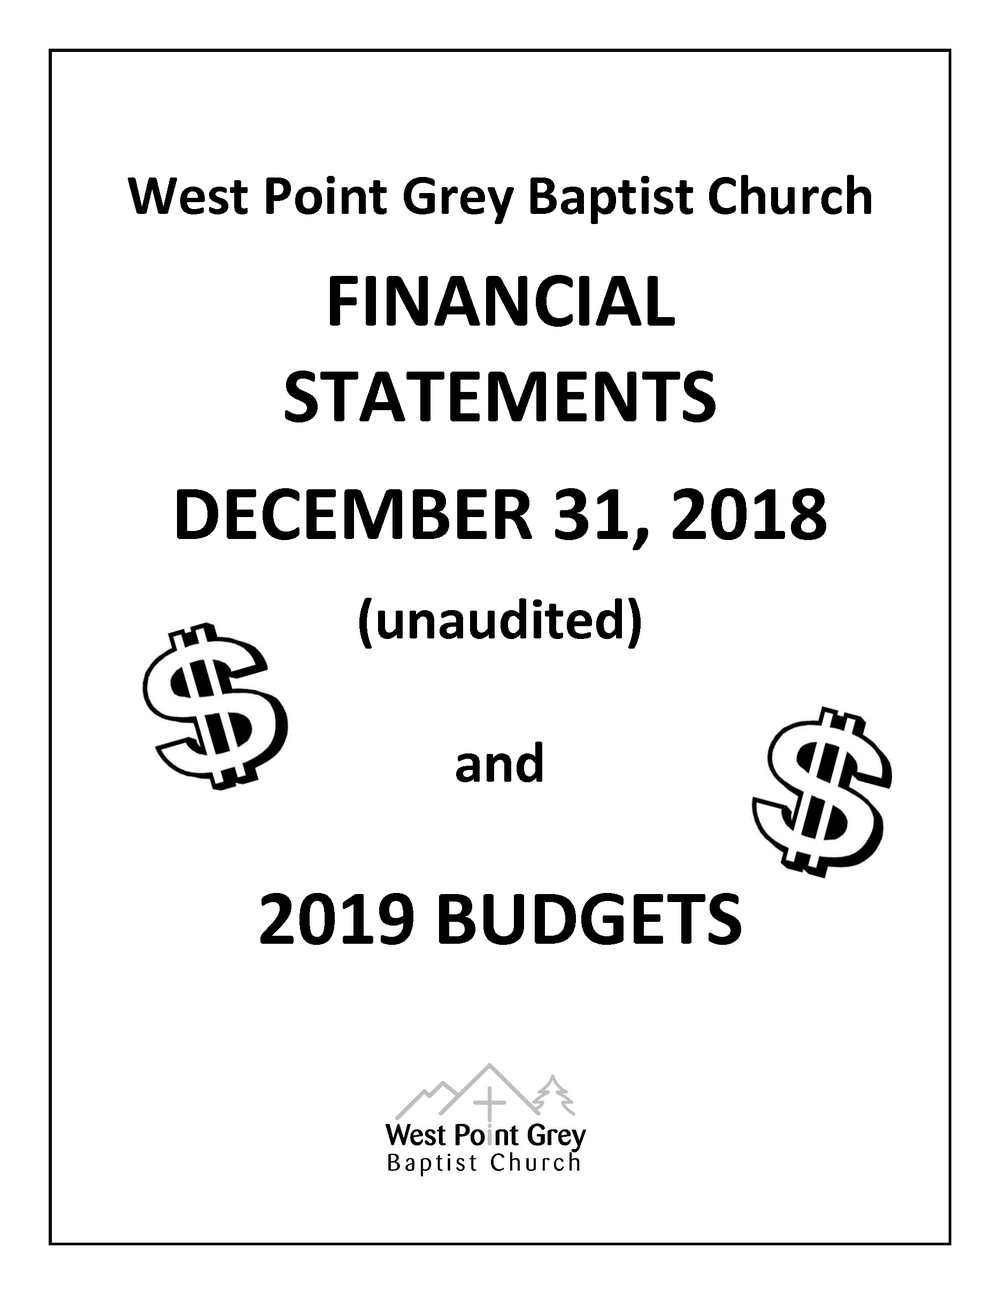 West Point Grey Baptist Church Financial Statements cover_2018.png